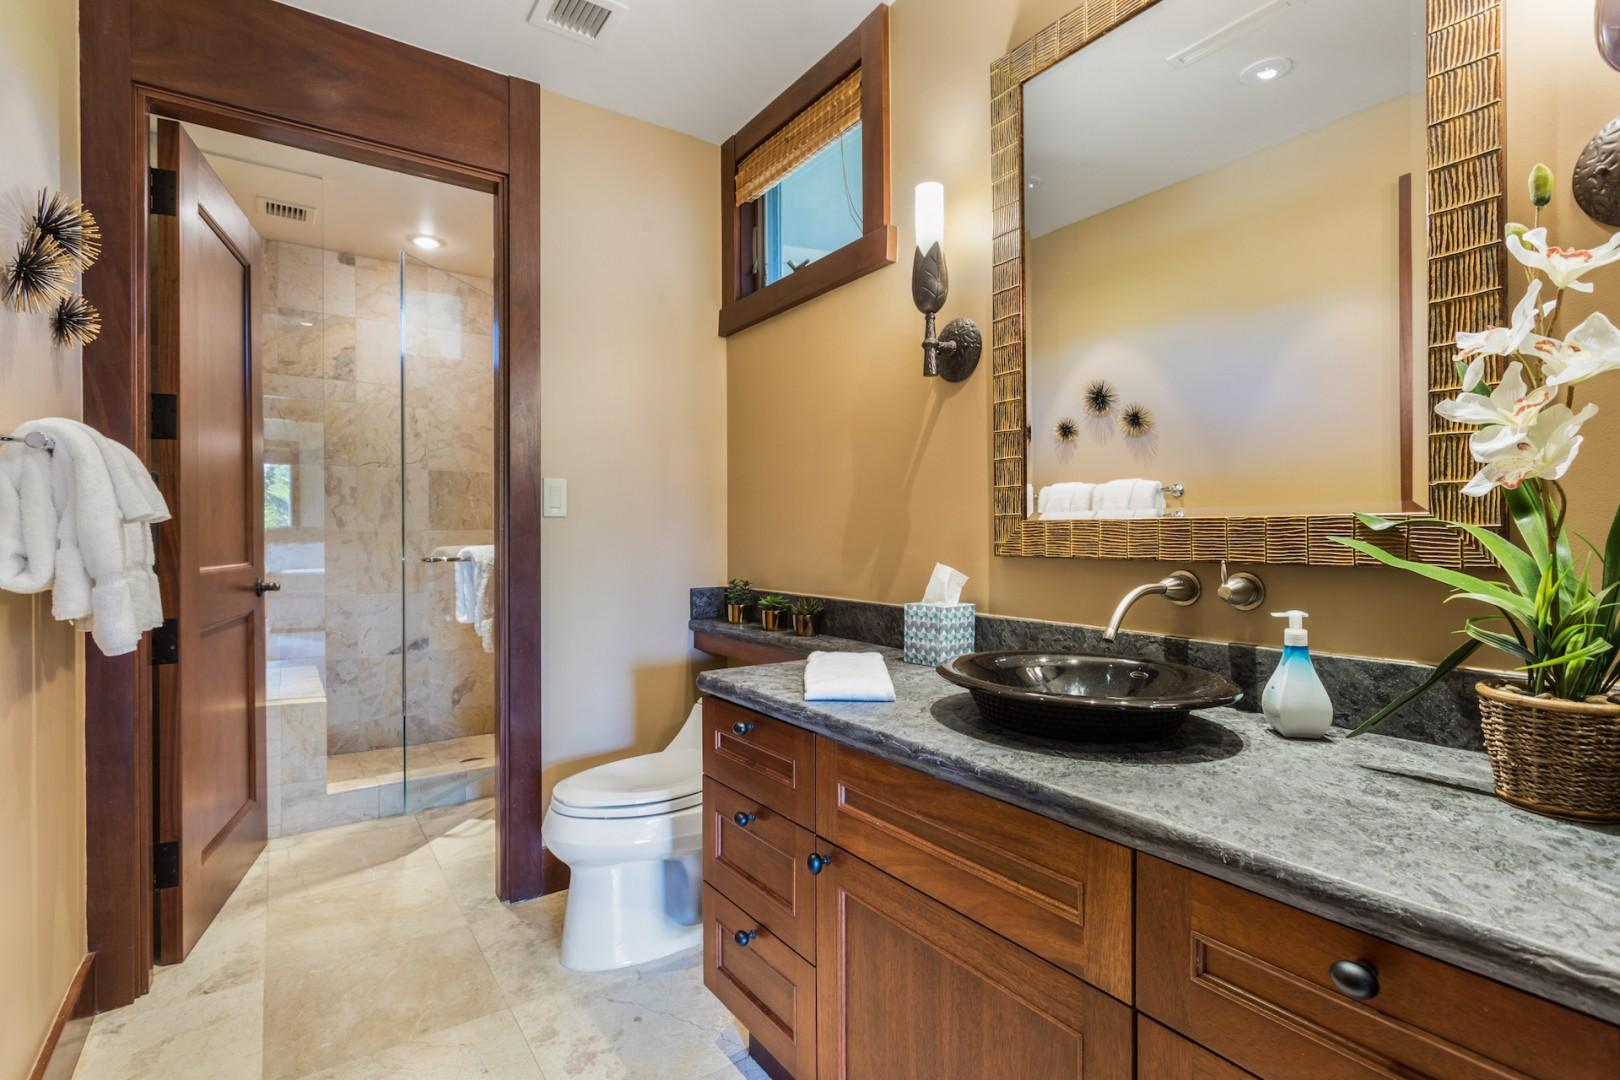 Third full bath, detached, with chic fixtures and walk-in shower.